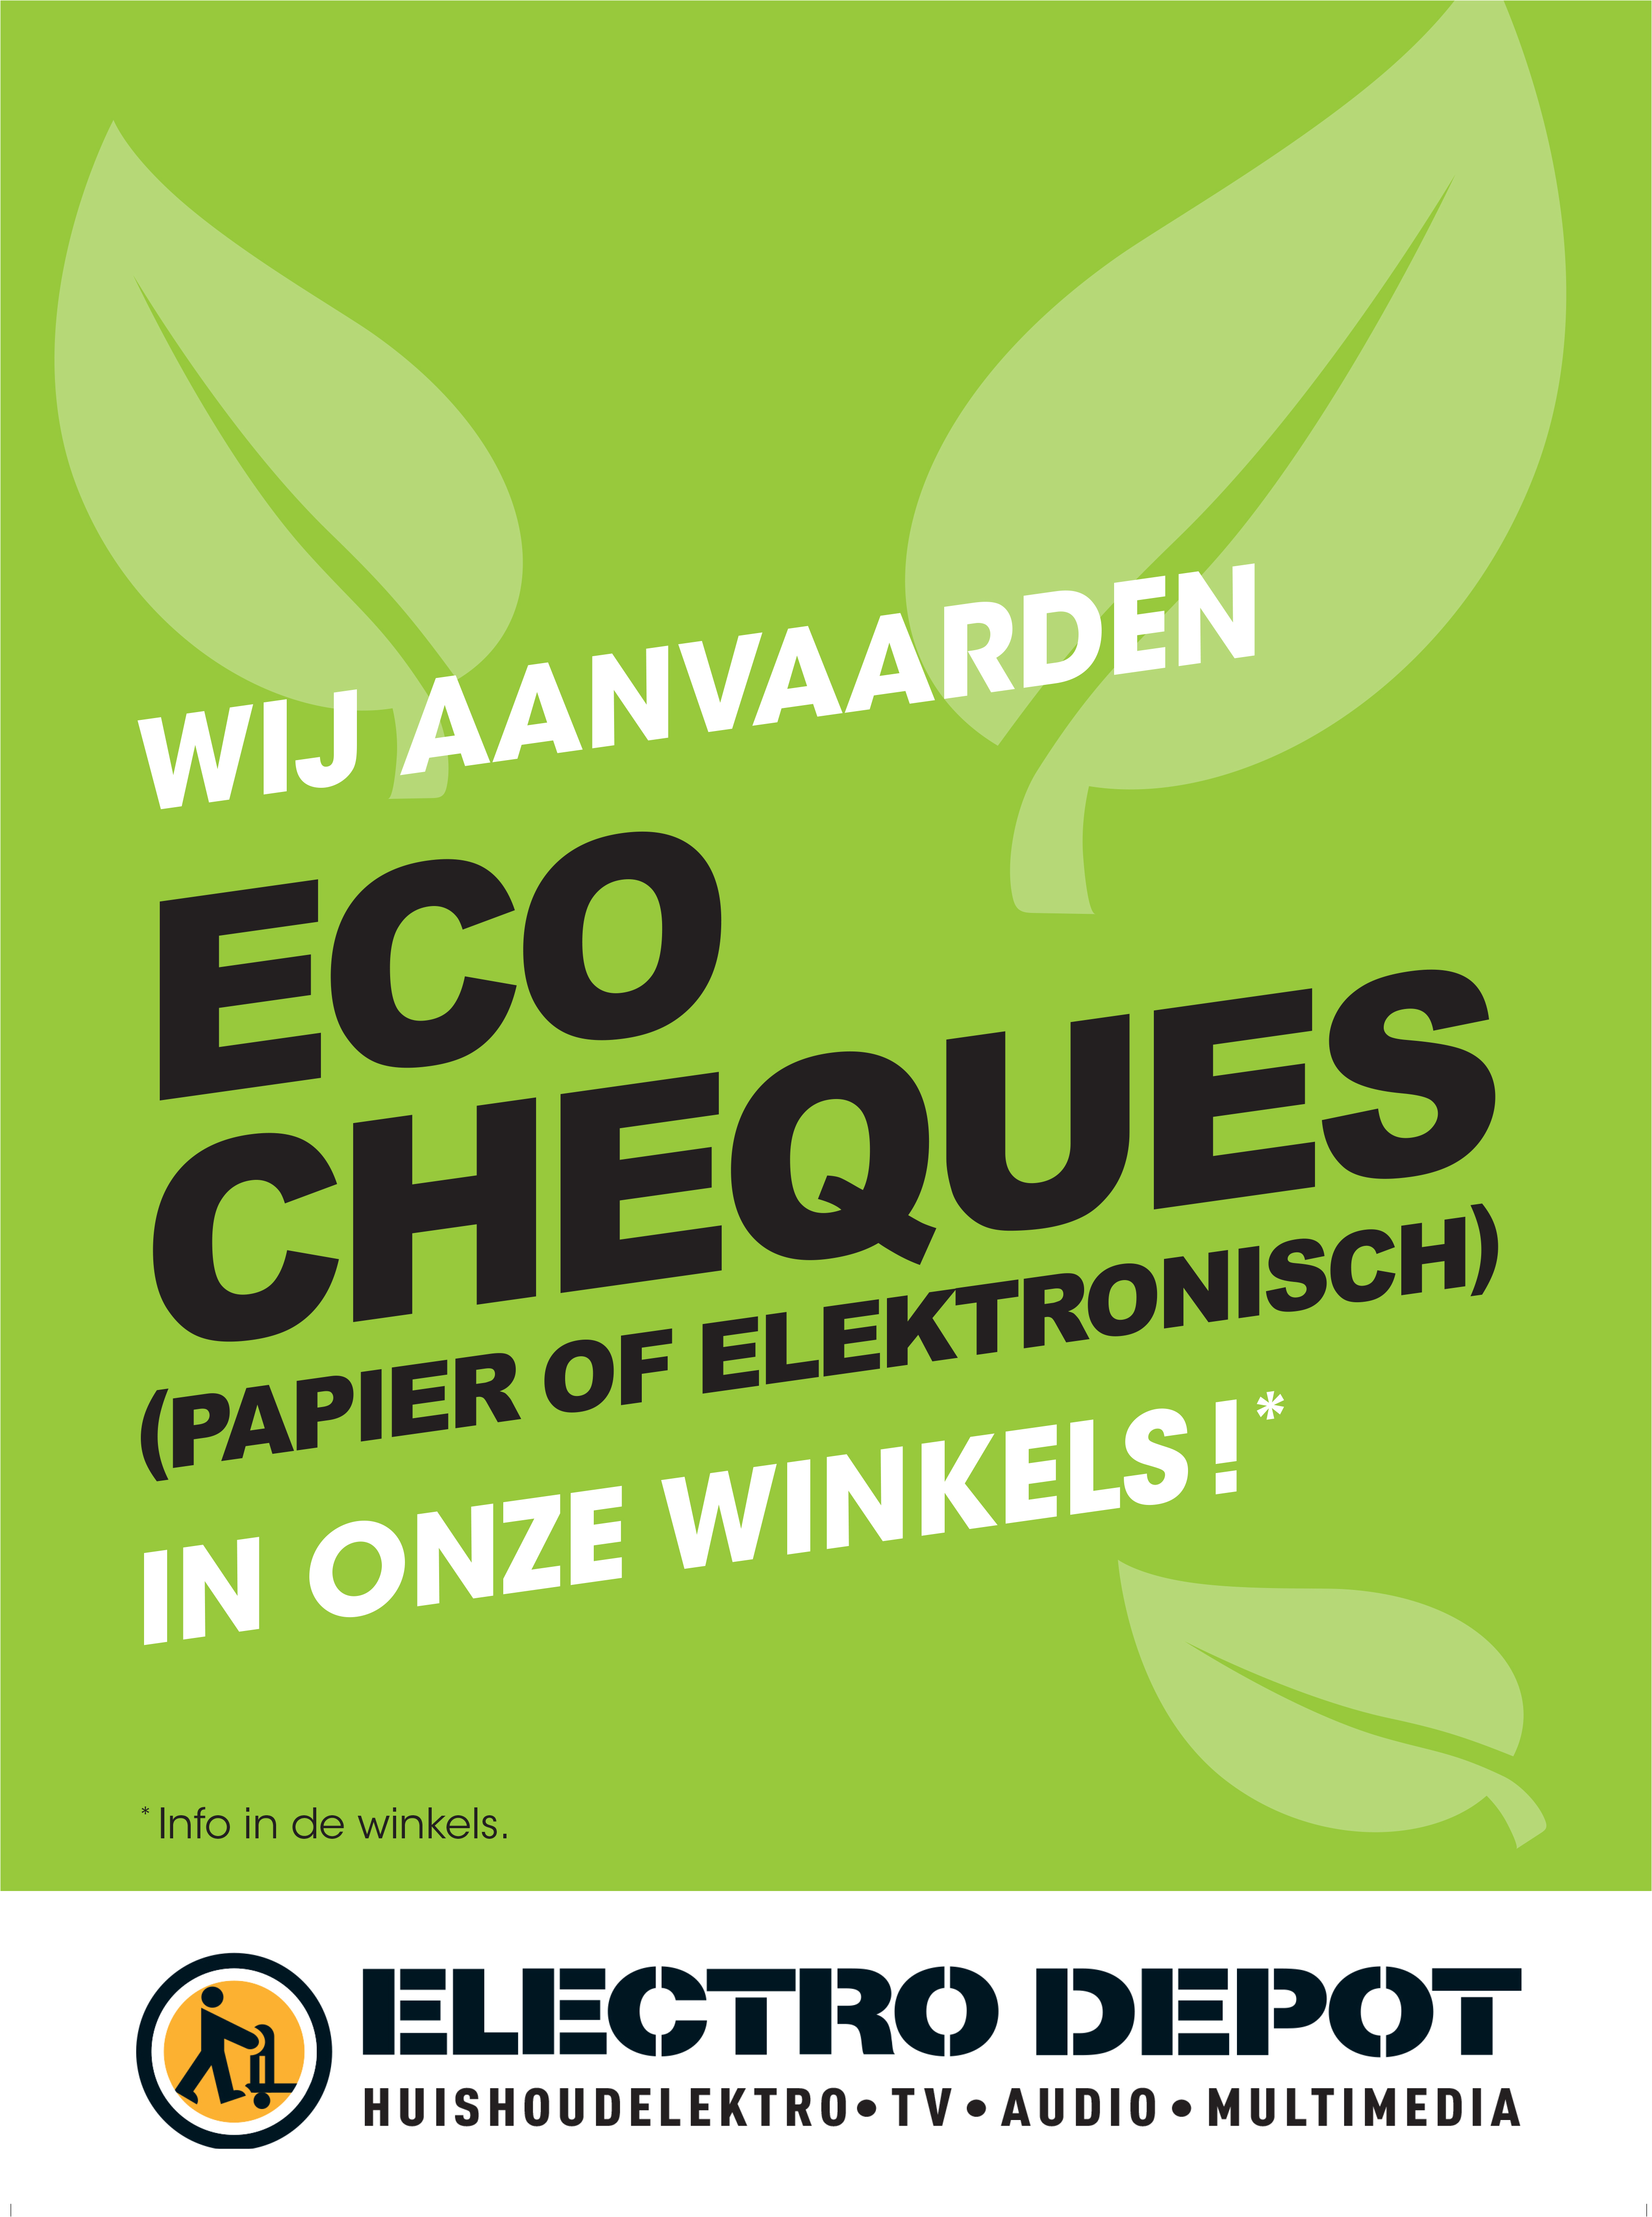 ecocheques electro.jpg